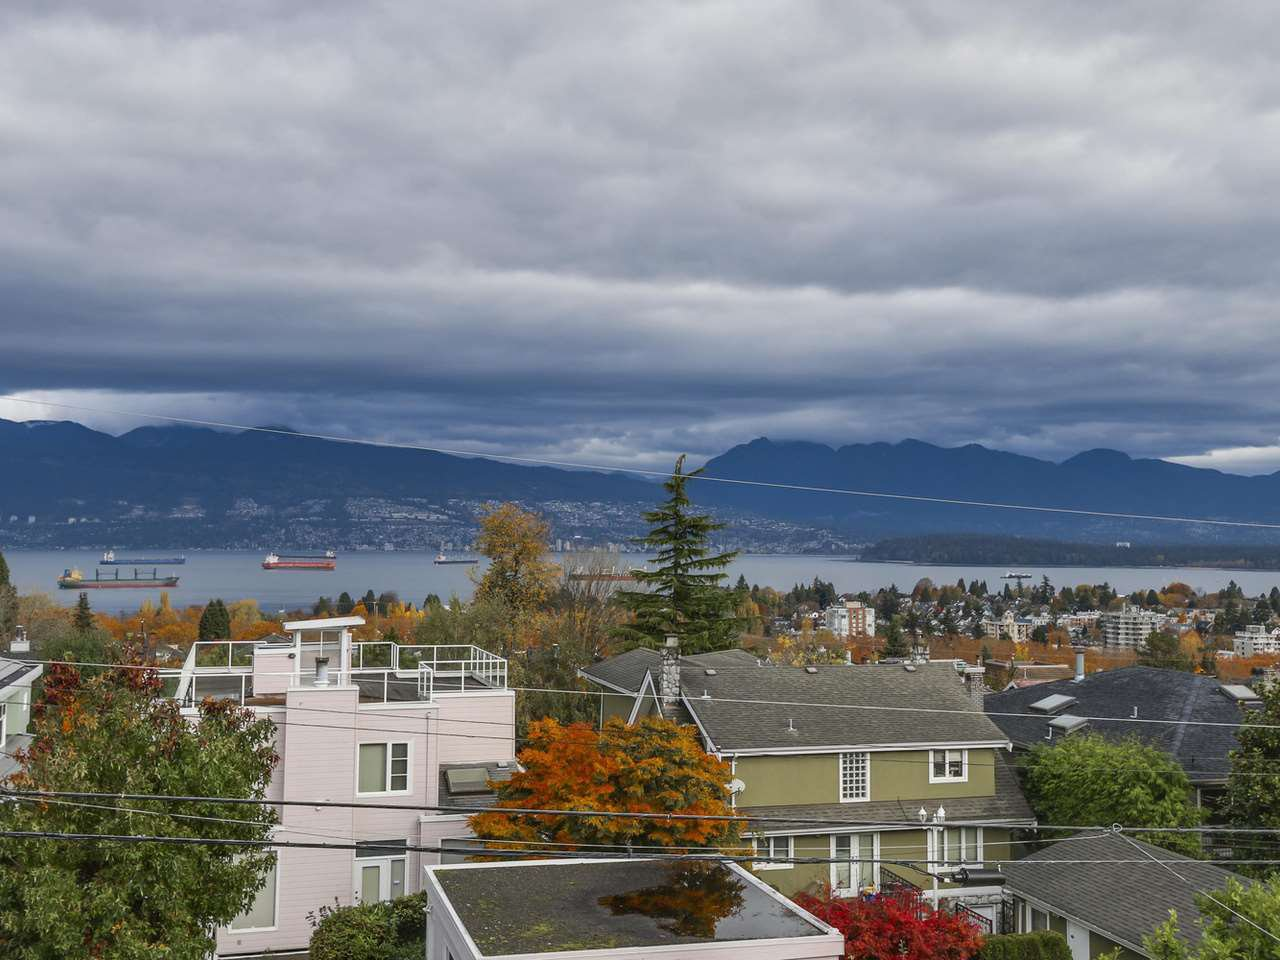 Main Photo: 3949 W 13TH Avenue in Vancouver: Point Grey House for sale (Vancouver West)  : MLS®# R2119677